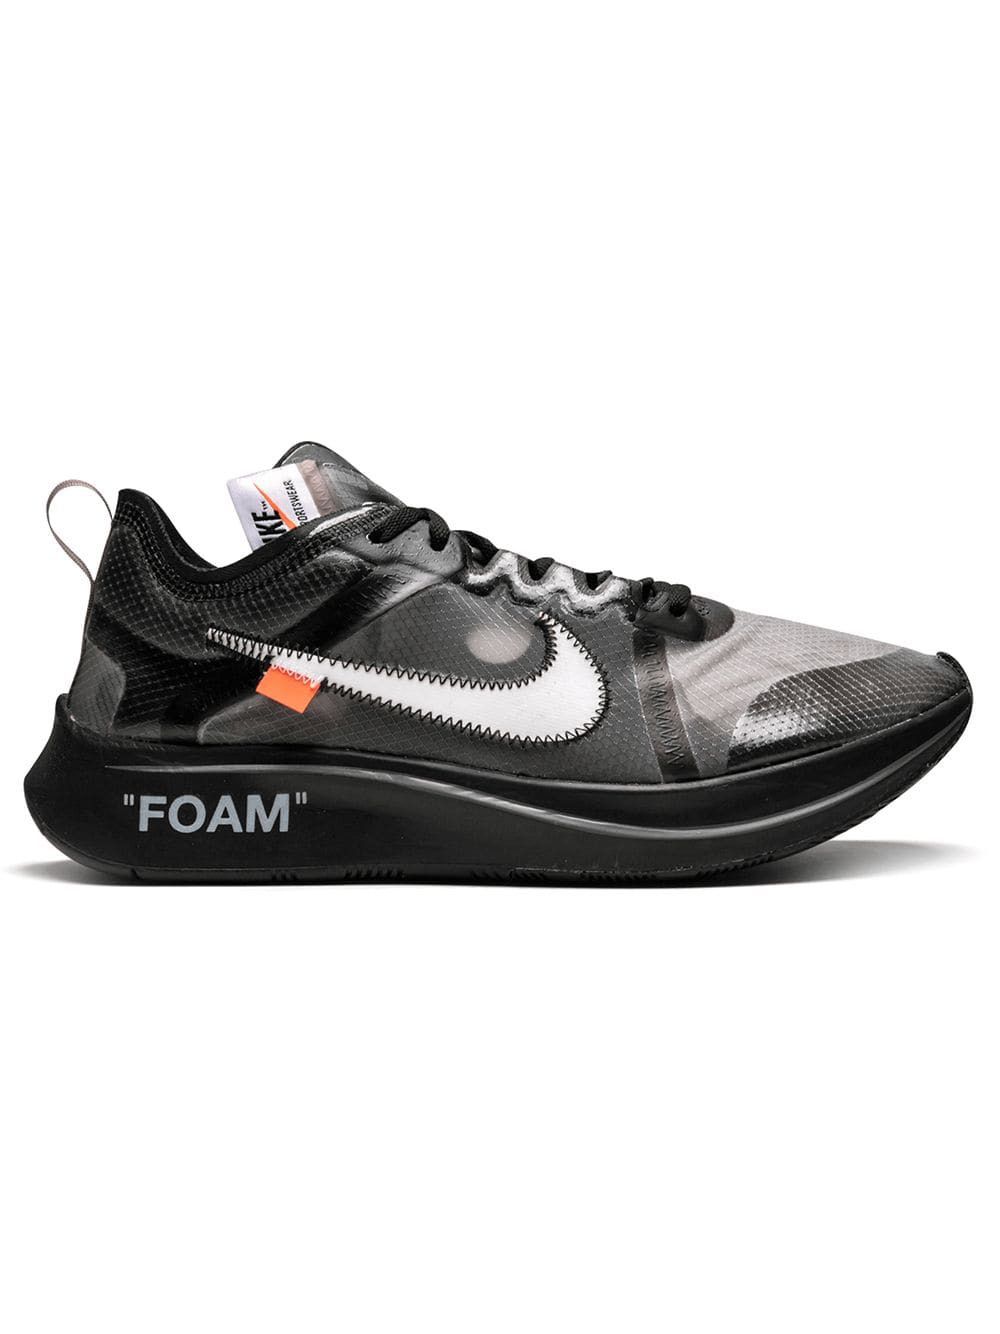 635e9ed3d3a Nike X Off White  The 10  Zoom Fly  Sneakers - Schwarz In Black. Farfetch